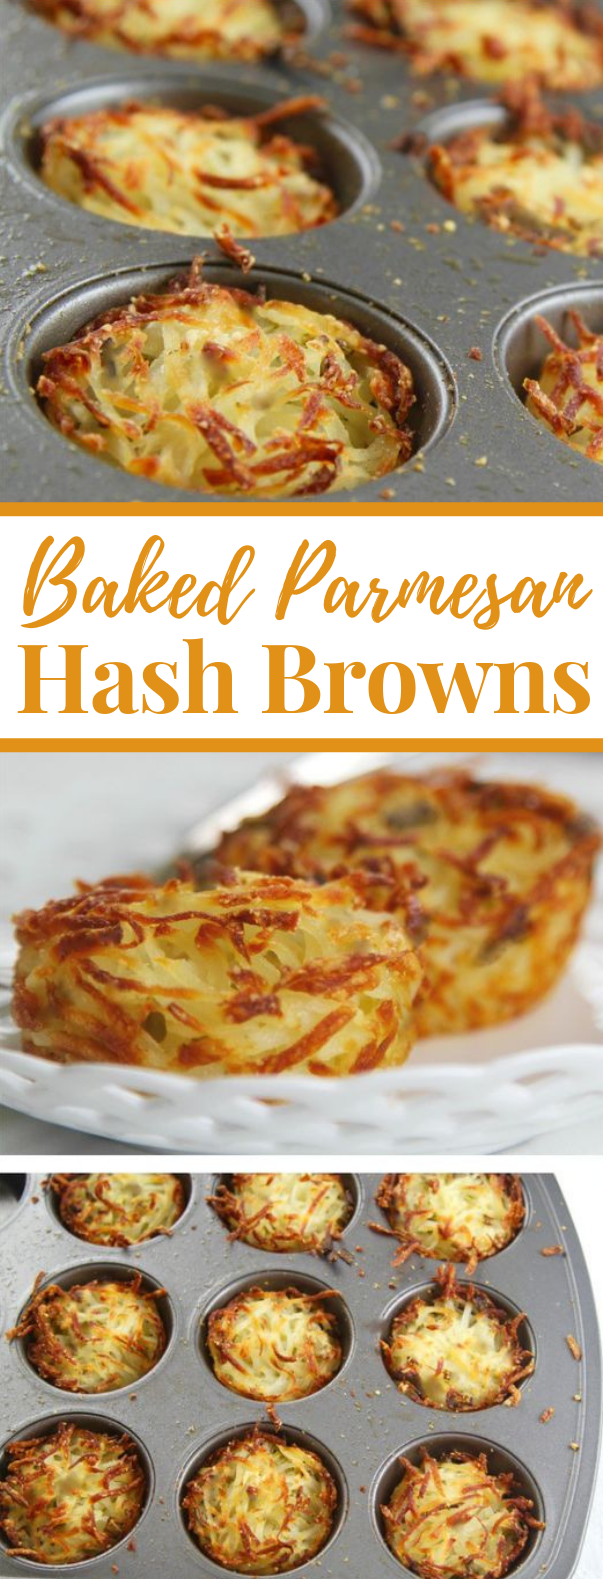 PARMESAN BAKED HASH BROWNS #breakfast #brunch